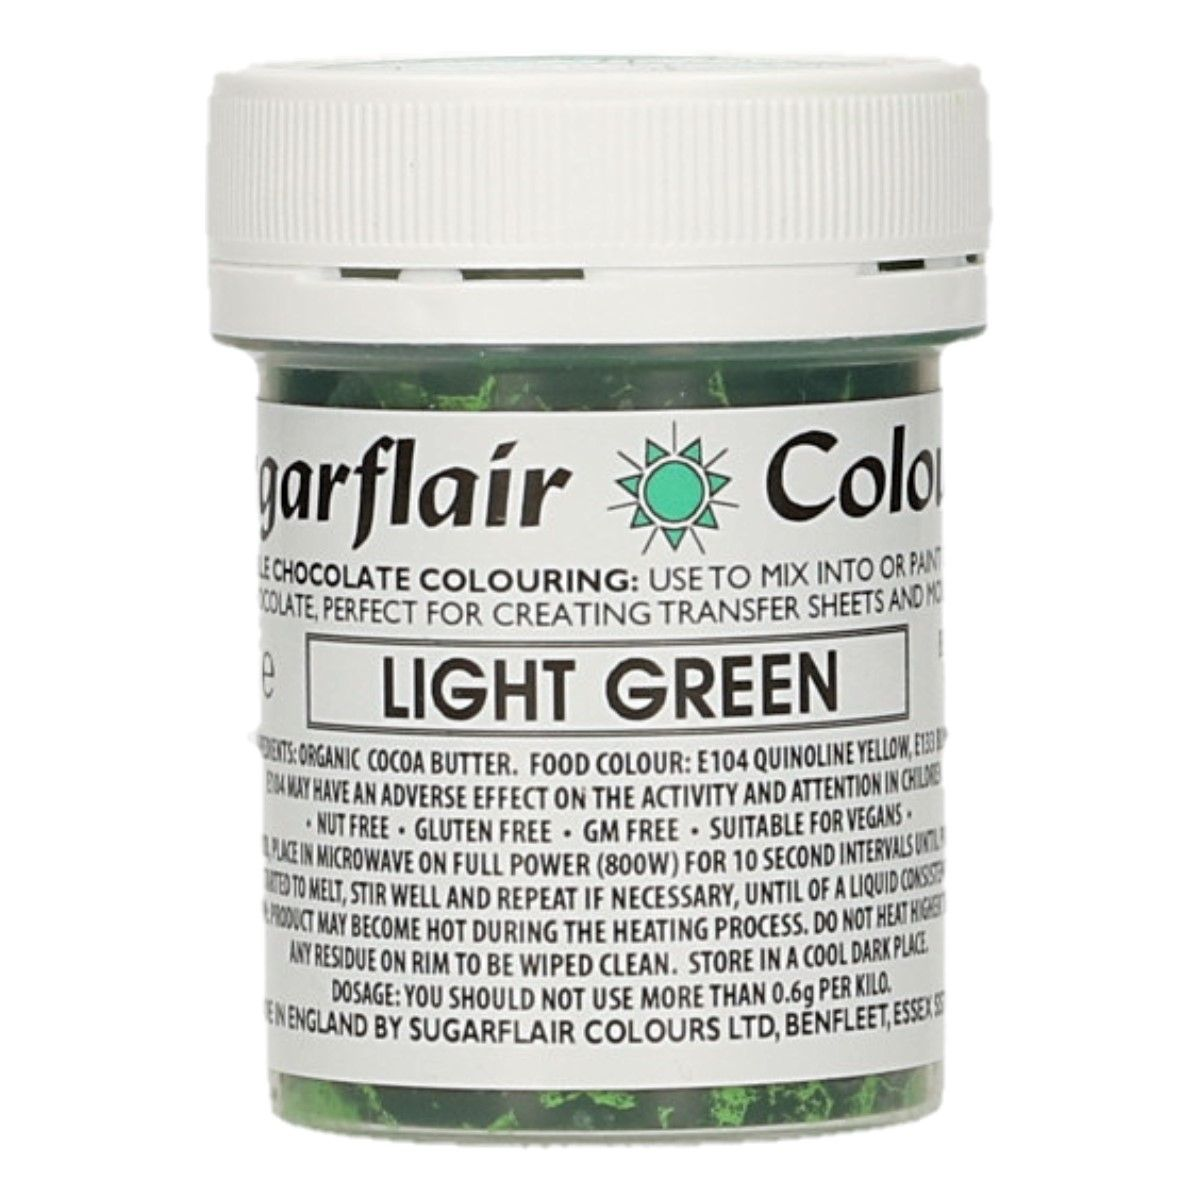 Sugarflair Chocolate Colour Light Green 35g